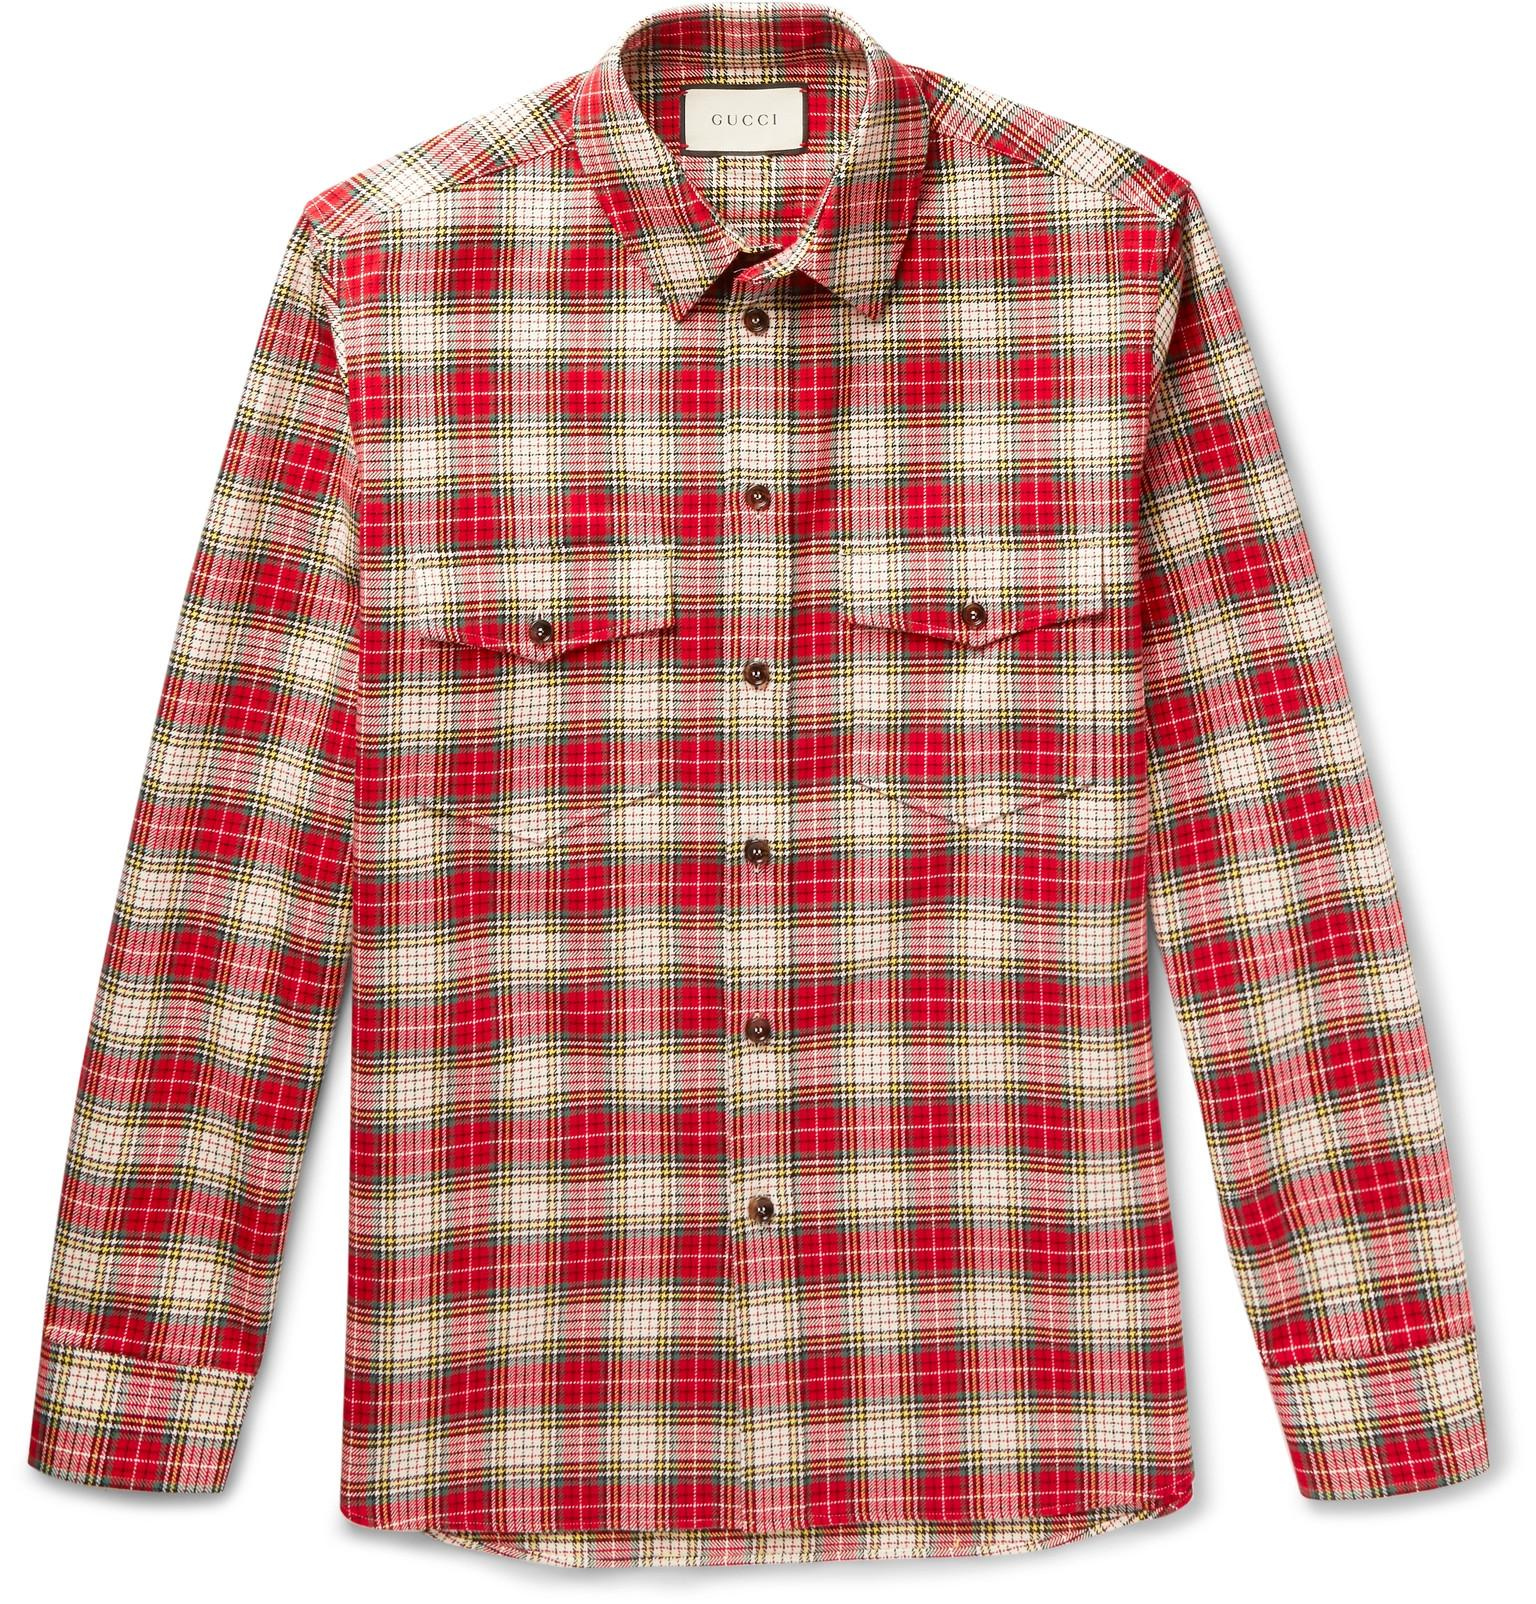 17c537126 Gucci Embroidered Checked Cotton-twill Shirt in Red for Men - Lyst